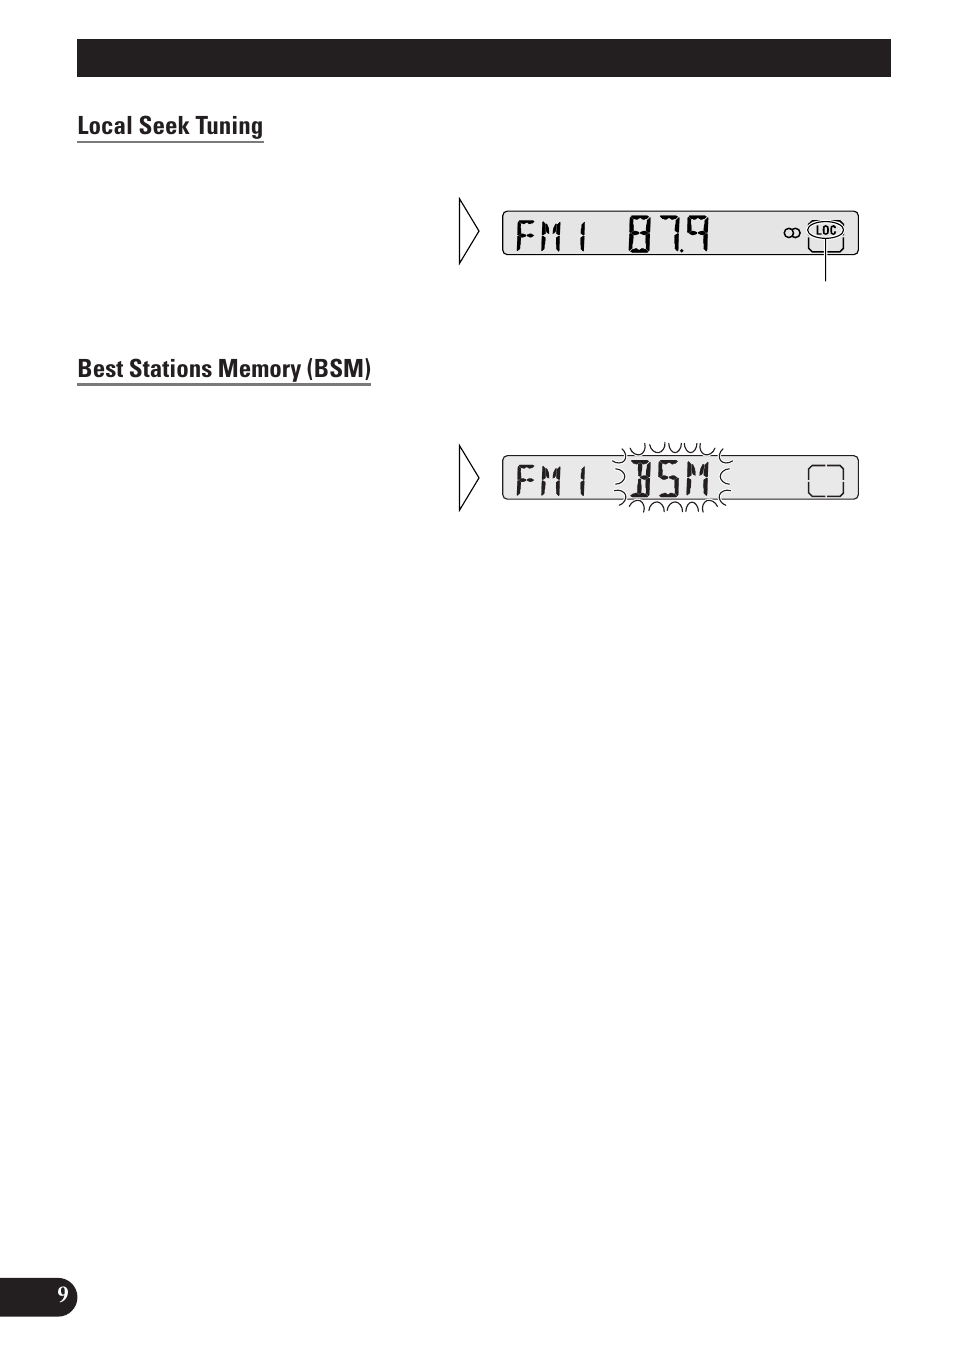 pioneer deh 2100 page10?resize\\\\\\\\\\\\\\\\\\\\\\\\\\\\\\\=665%2C945 pioneer deh 24ub wiring diagram pioneer wiring diagrams pioneer deh 24ub wiring diagram at mifinder.co